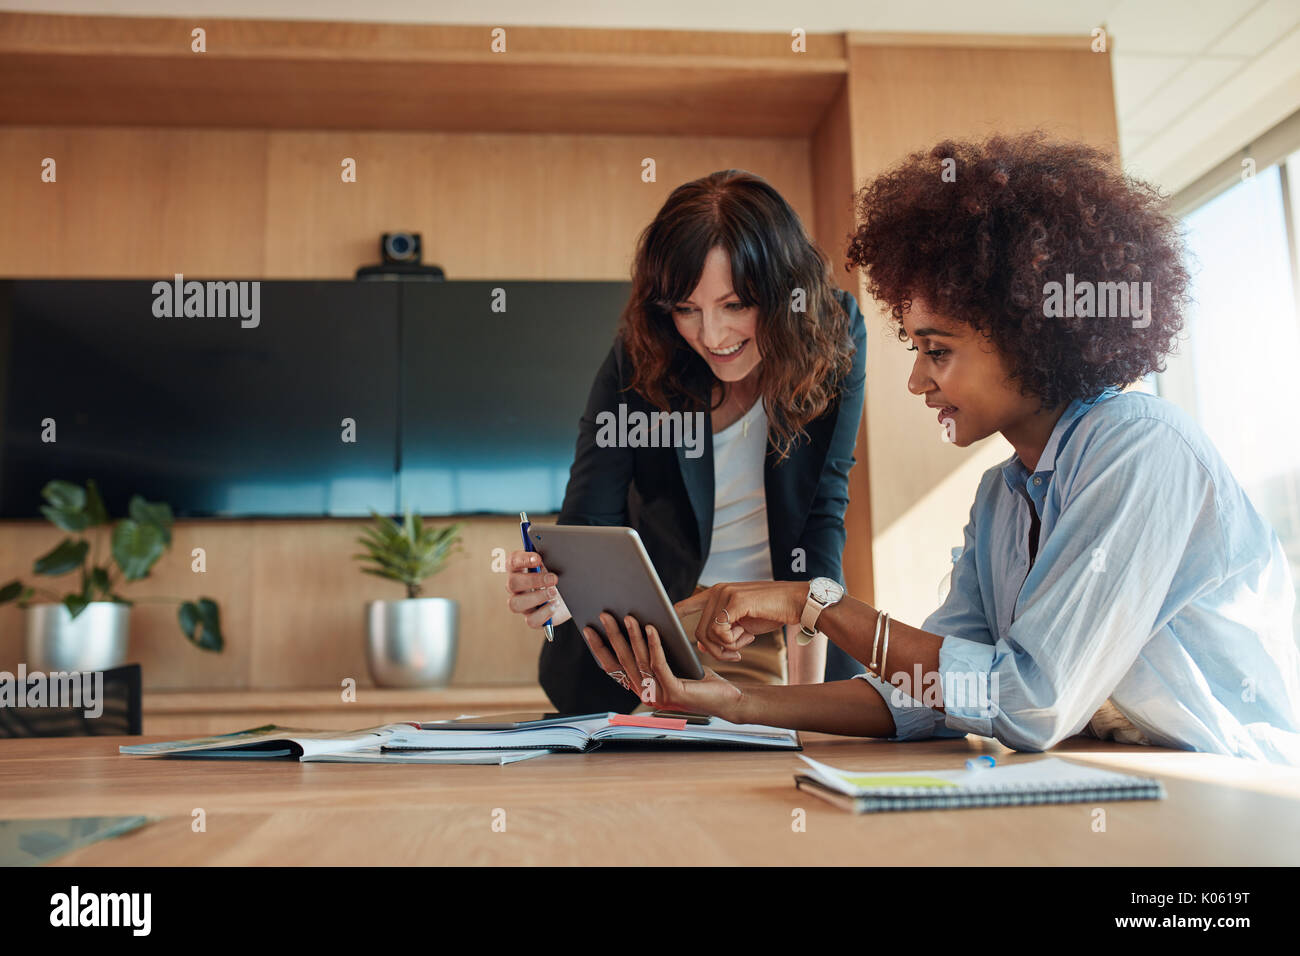 African businesswoman showing something on digital tablet to her female colleague while sitting at her desk. Professional employees discussing ideas o - Stock Image